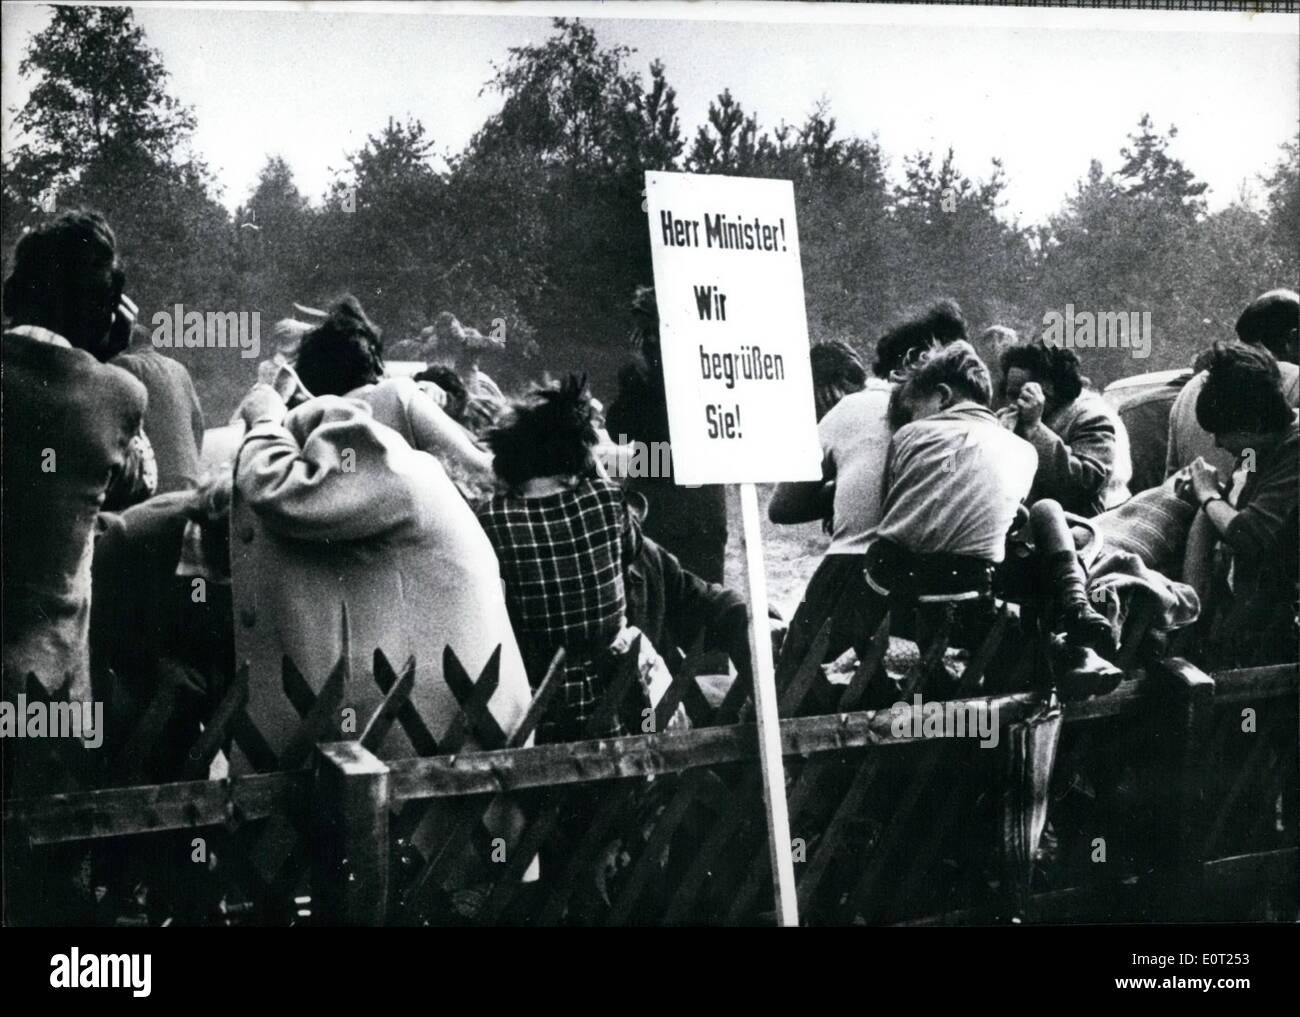 Jul. 07, 1960 - A peculiar welcome: The people who cam to welcome the Minister of Defence, Franz Josef Strauss STRAUSS in Stuc - Stock Image